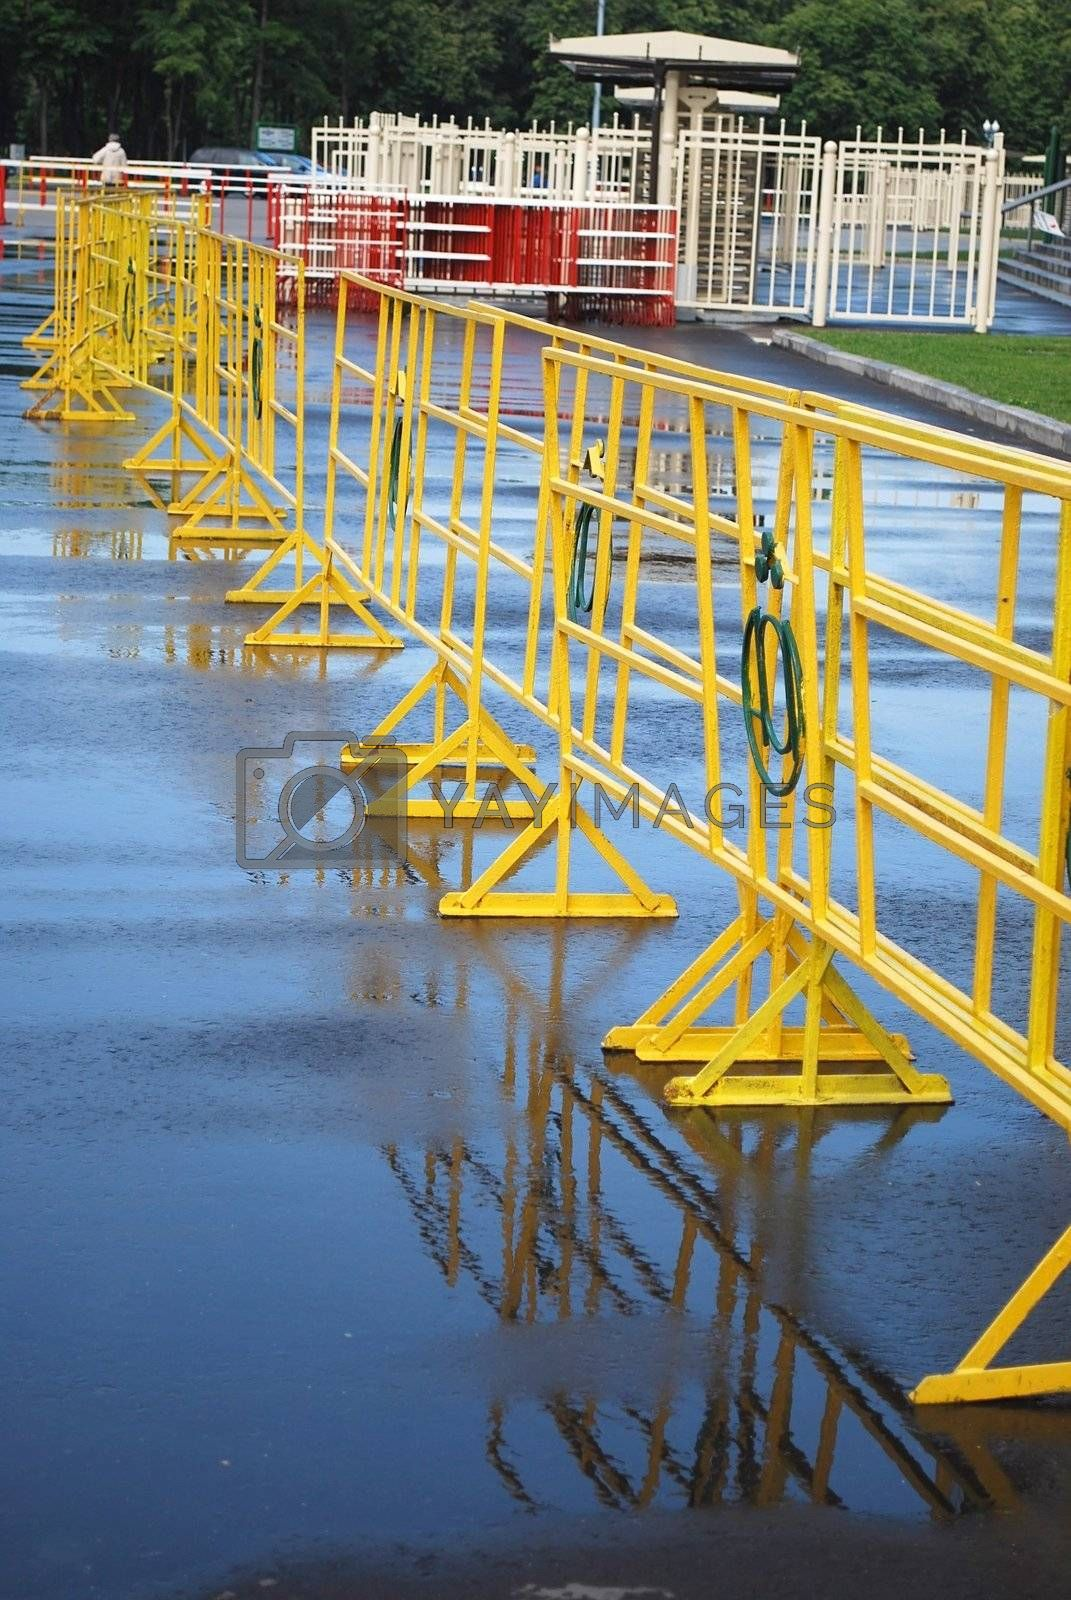 Bright yellow crowd control fence with reflection after rain